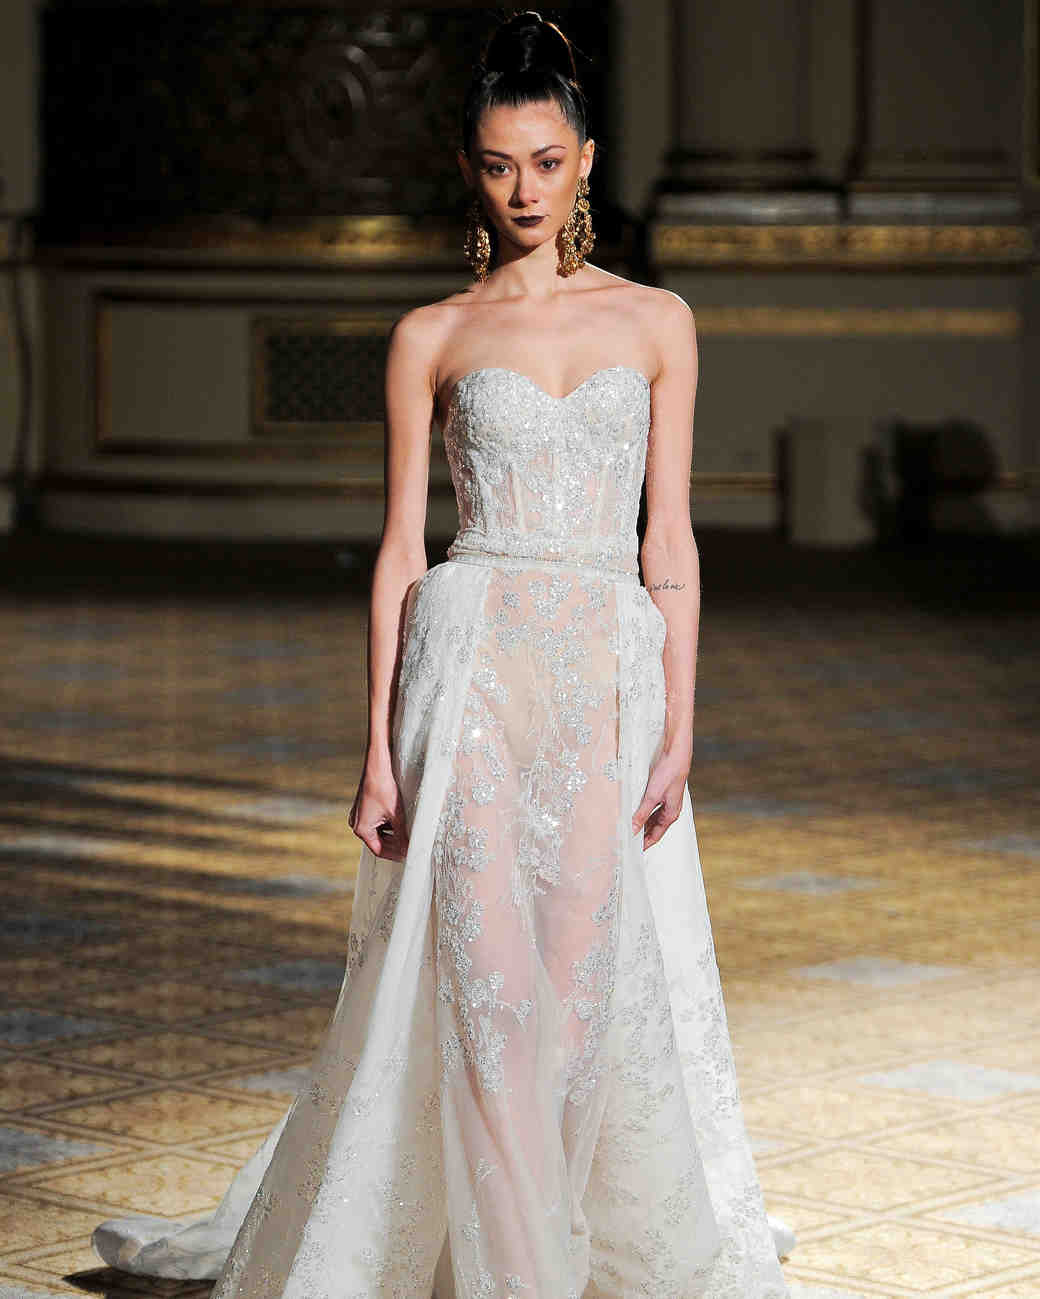 berta sweetheart sparkly sheer wedding dress spring 2018